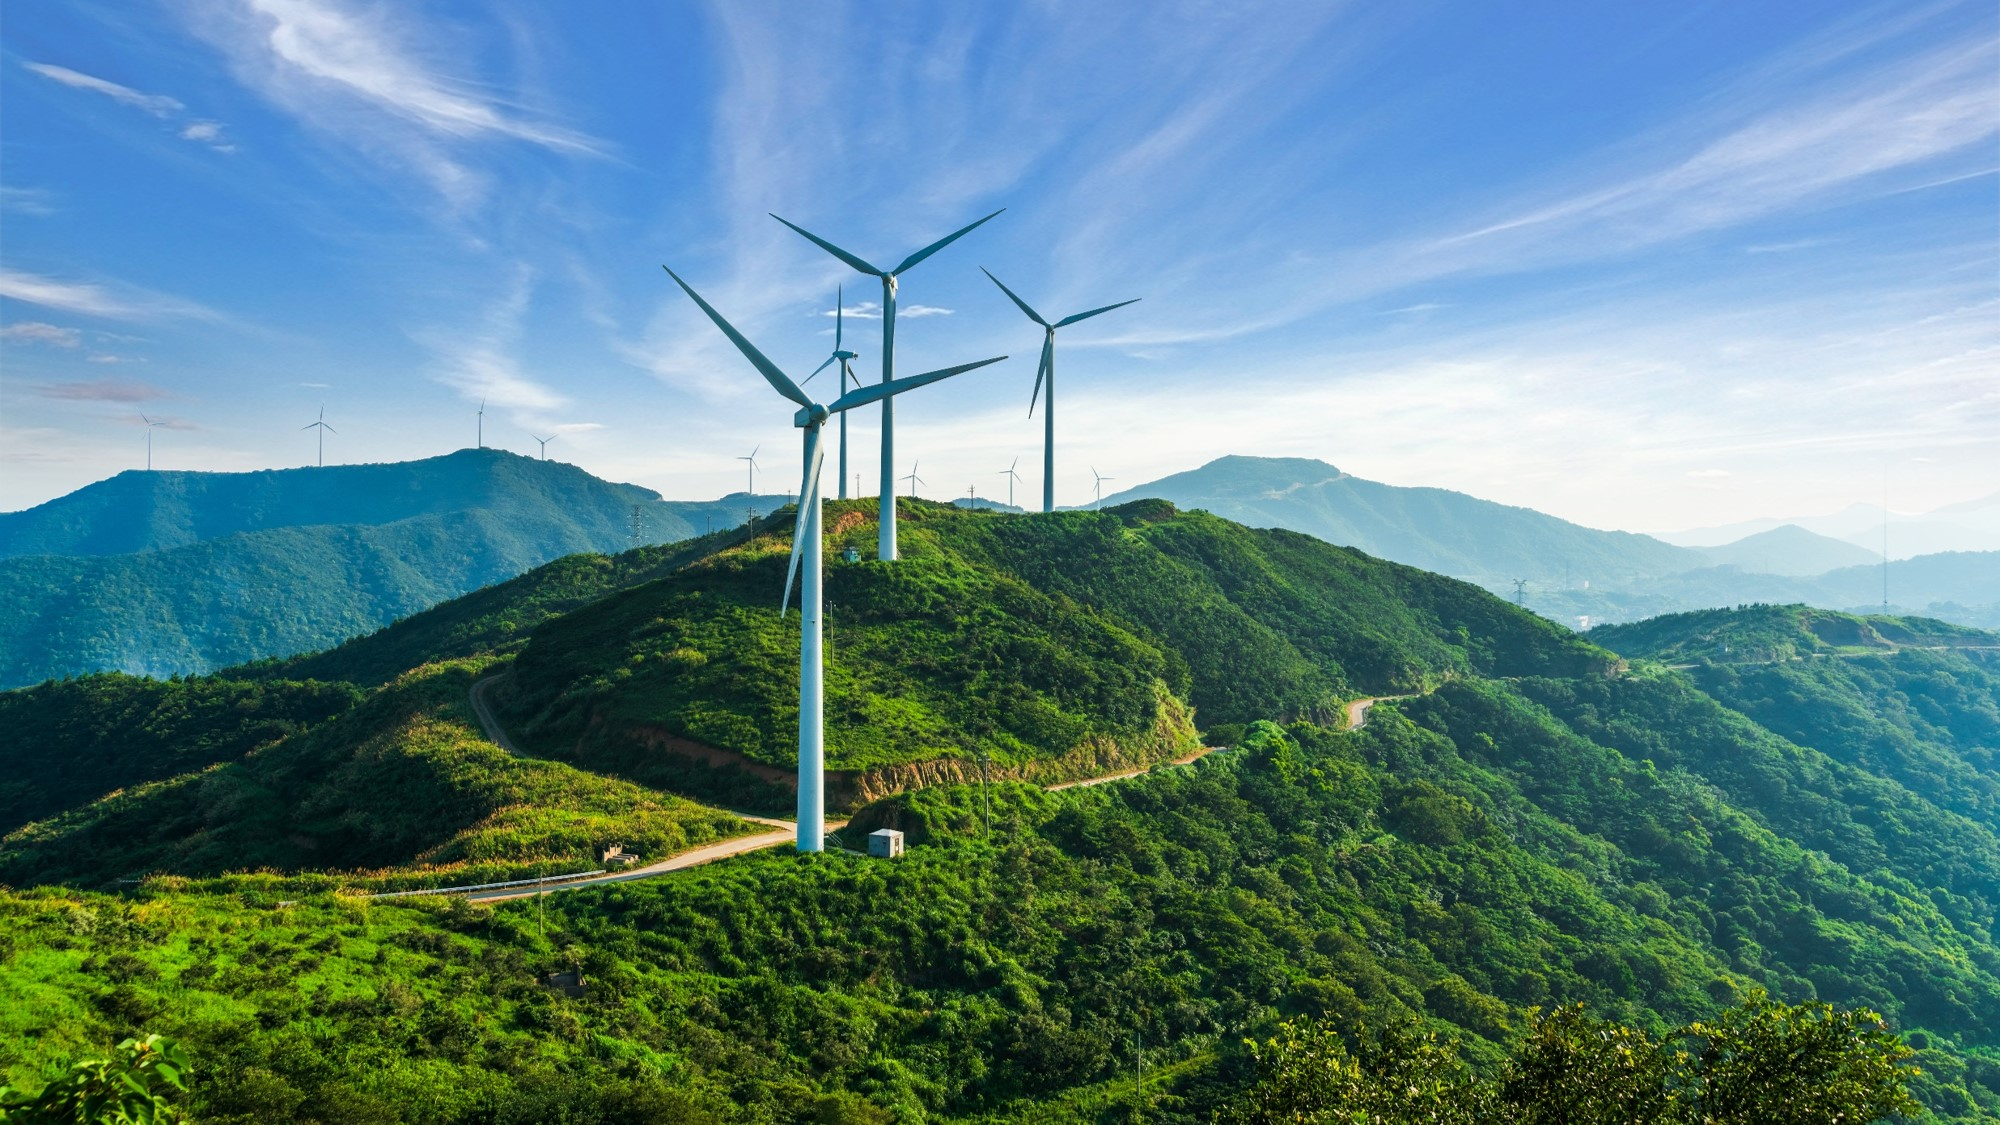 windturbines as metaphor for sustainability in corporate banking